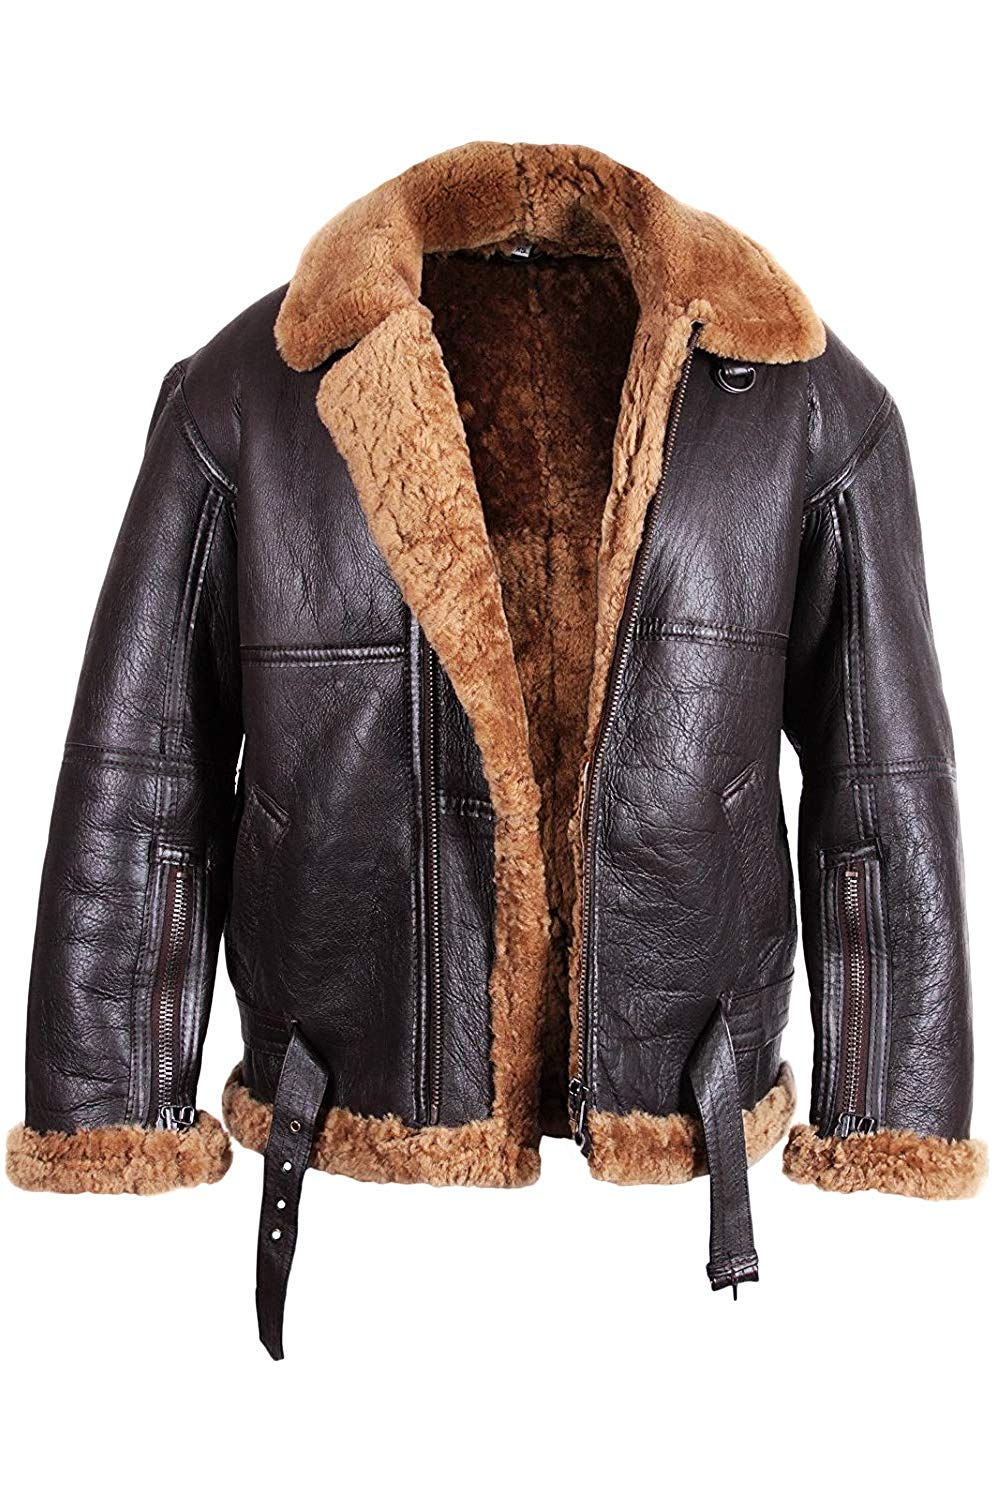 Mens Aviator Flying B3 Shearling Sheepskin Leather Bomber Jacket